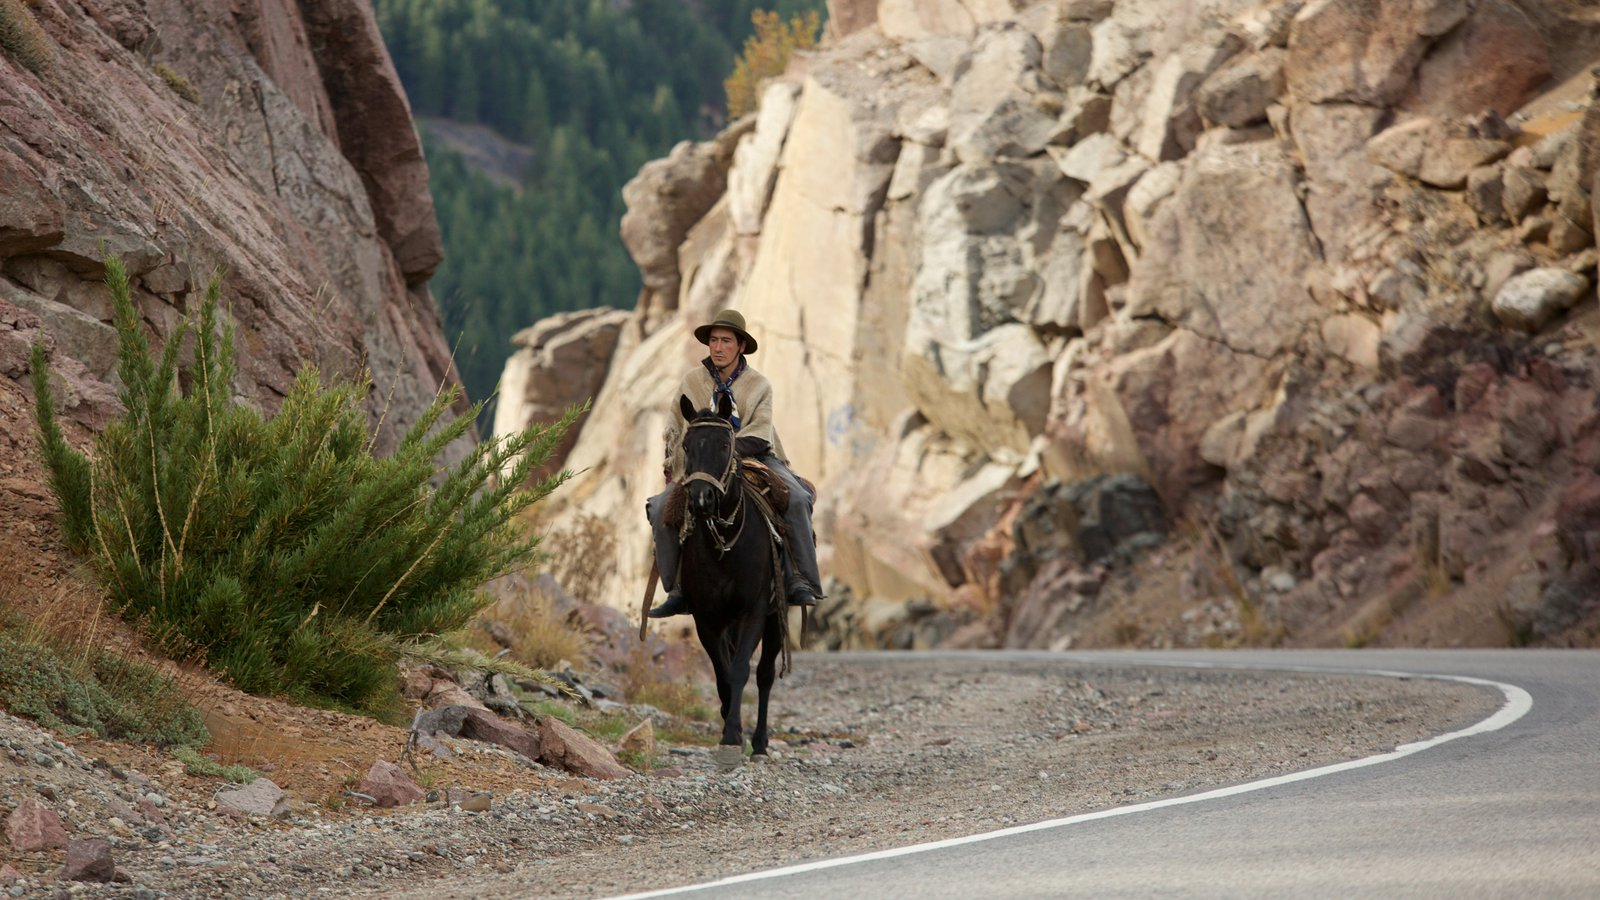 Patagonia Region which includes tranquil scenes and horseriding as well as an individual male